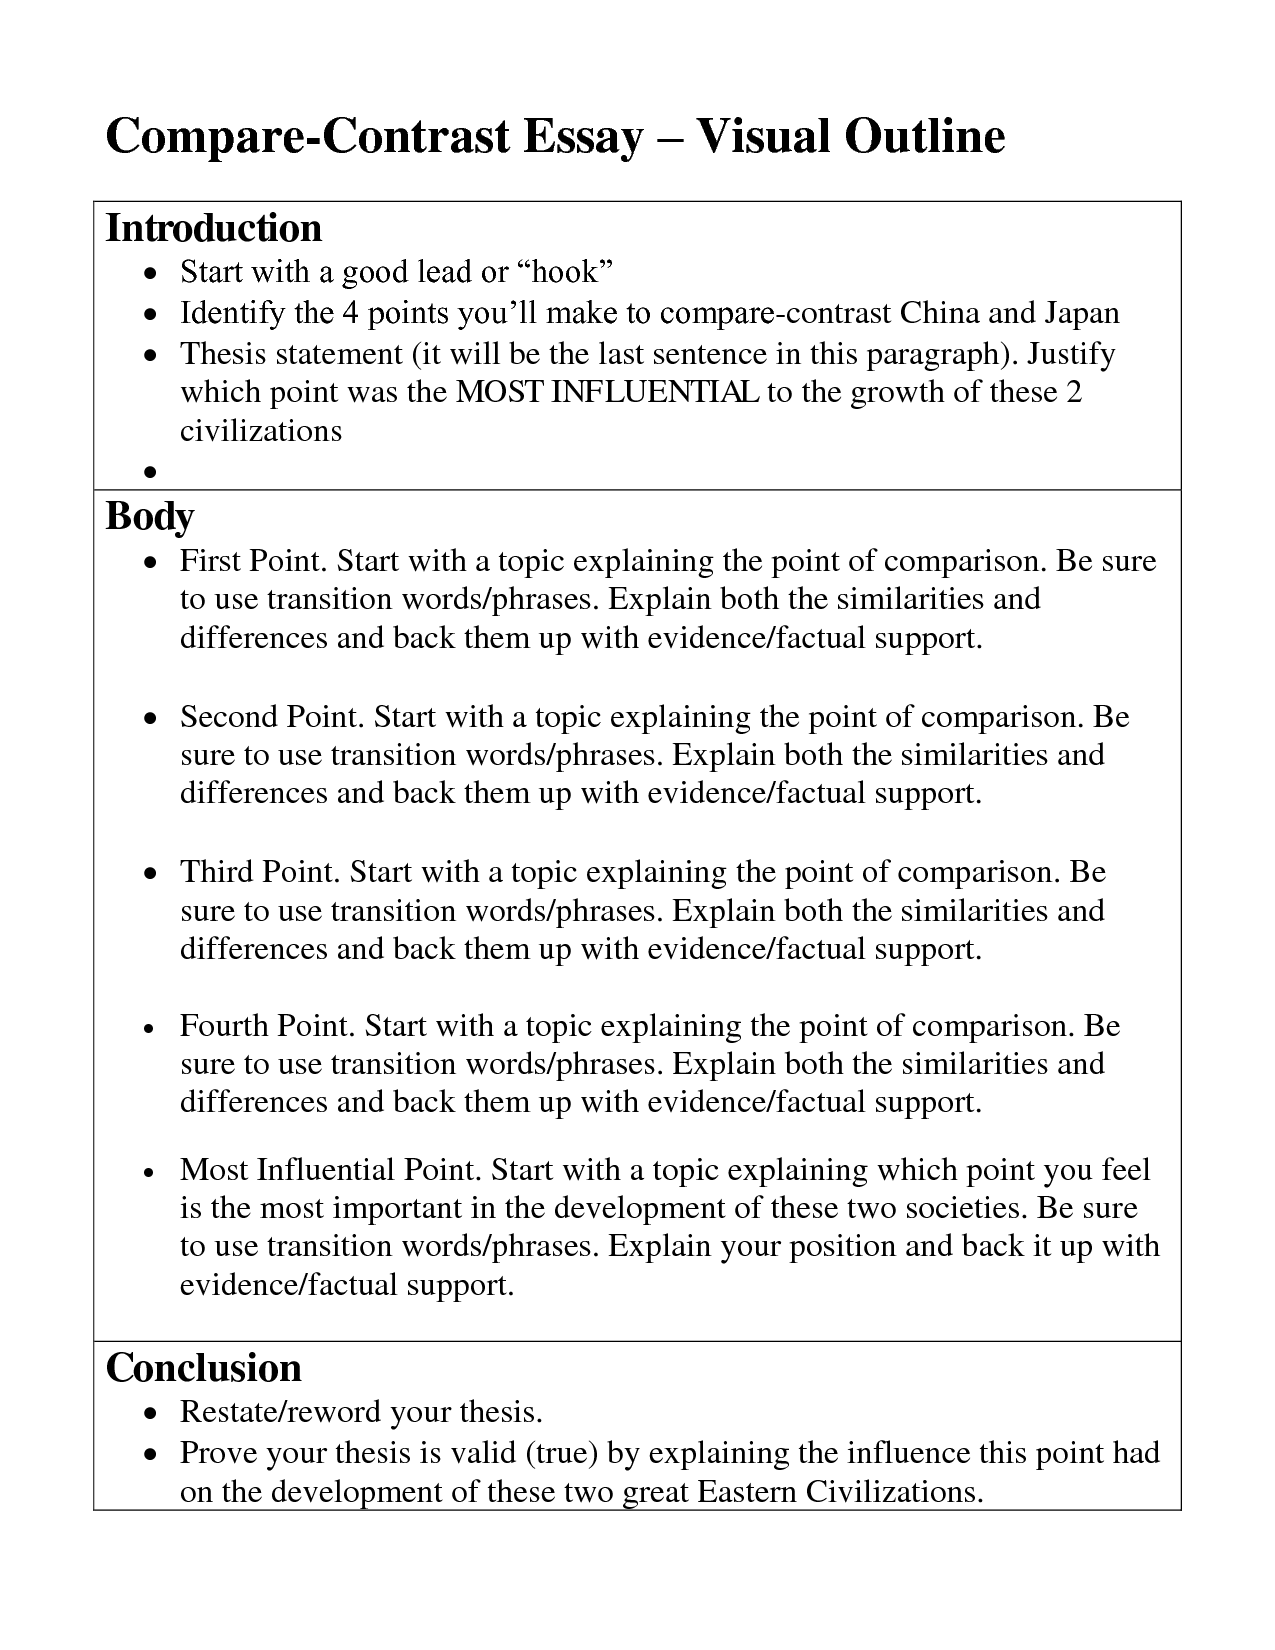 Writing Essays University Websites To Write Essays Descriptive Writing Essay Creative Writing Essays Hooks For W In 2021 Essay Outline Essay Examples Essay Writing